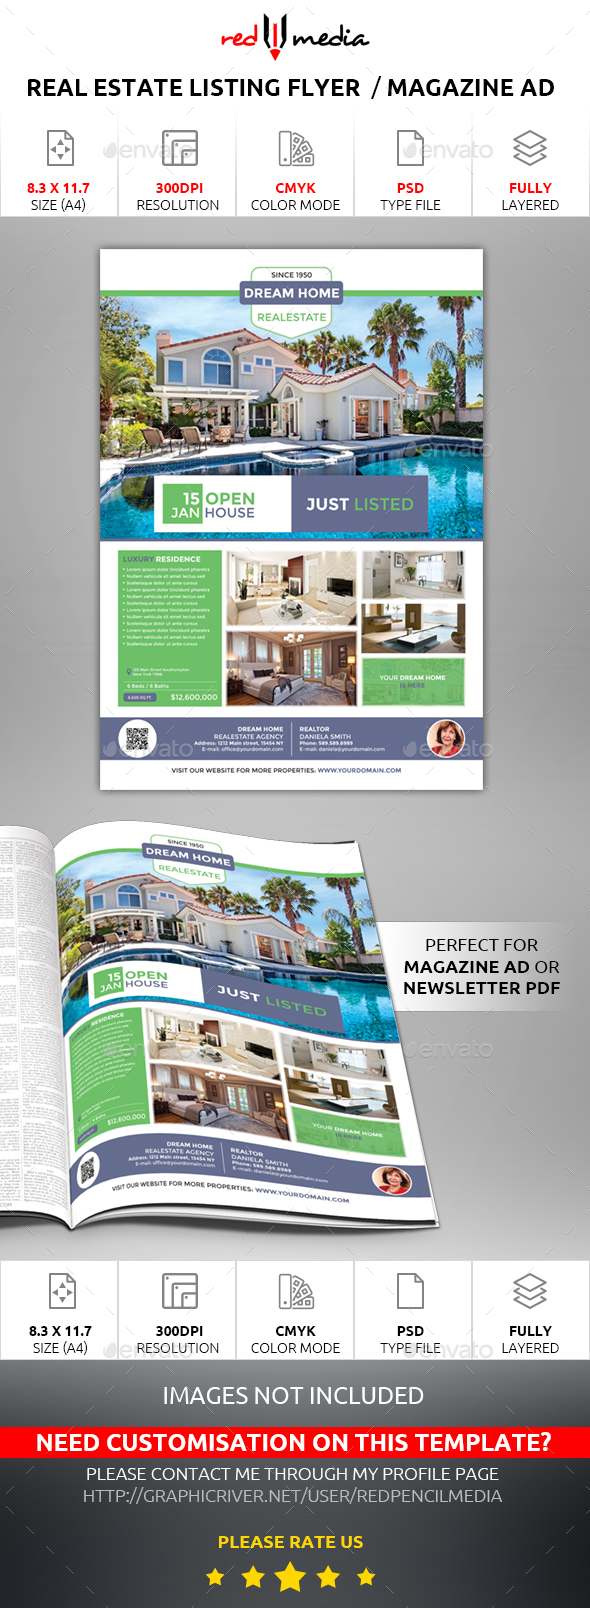 Real Estate Listing Flyer / Magazine AD